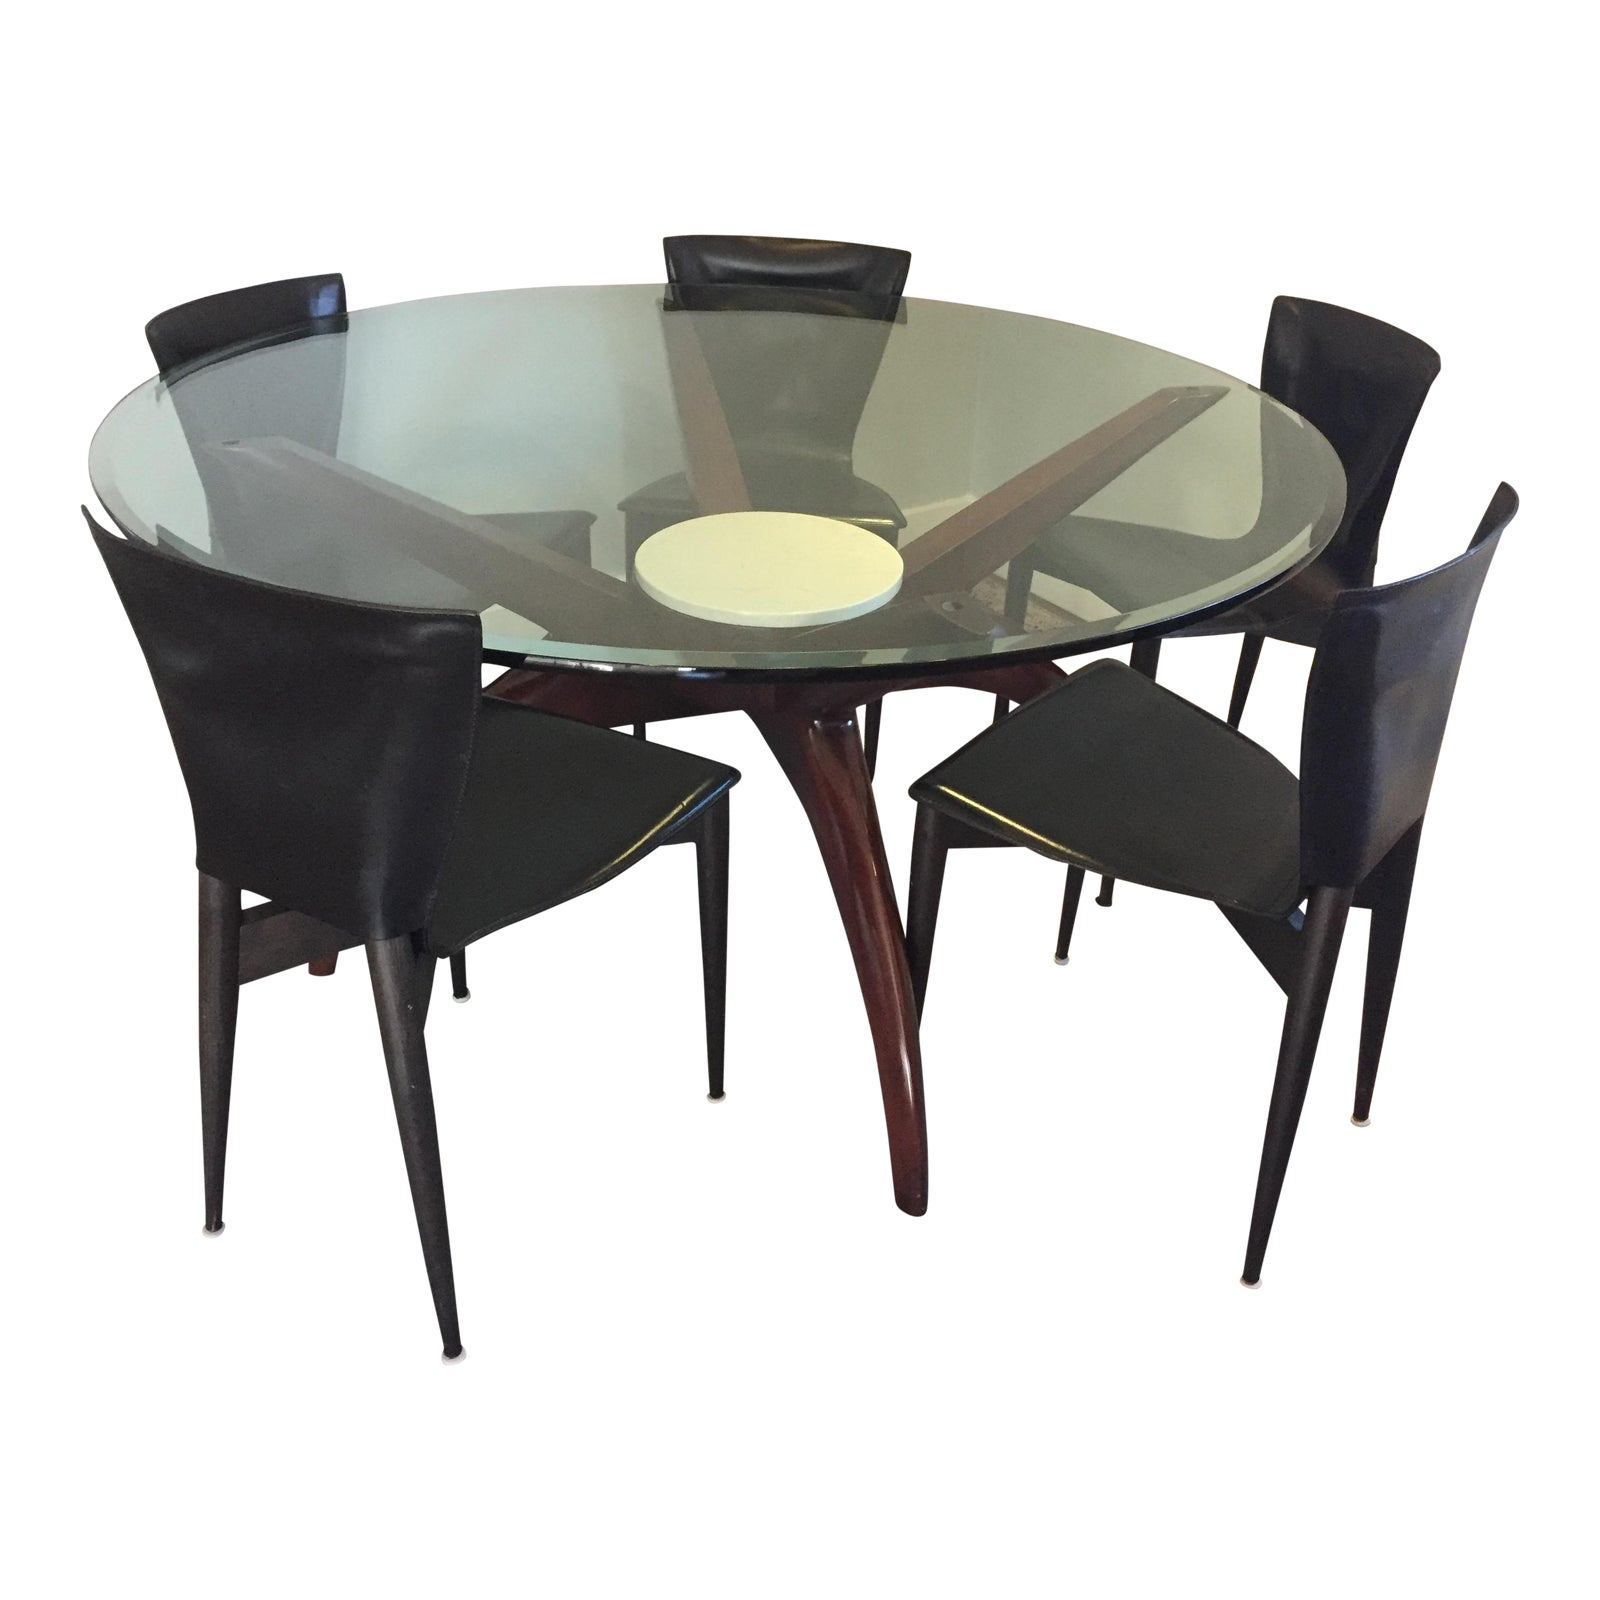 Wood & Glass Round Dining Table & Leather Chairs - S/6 Mid ...